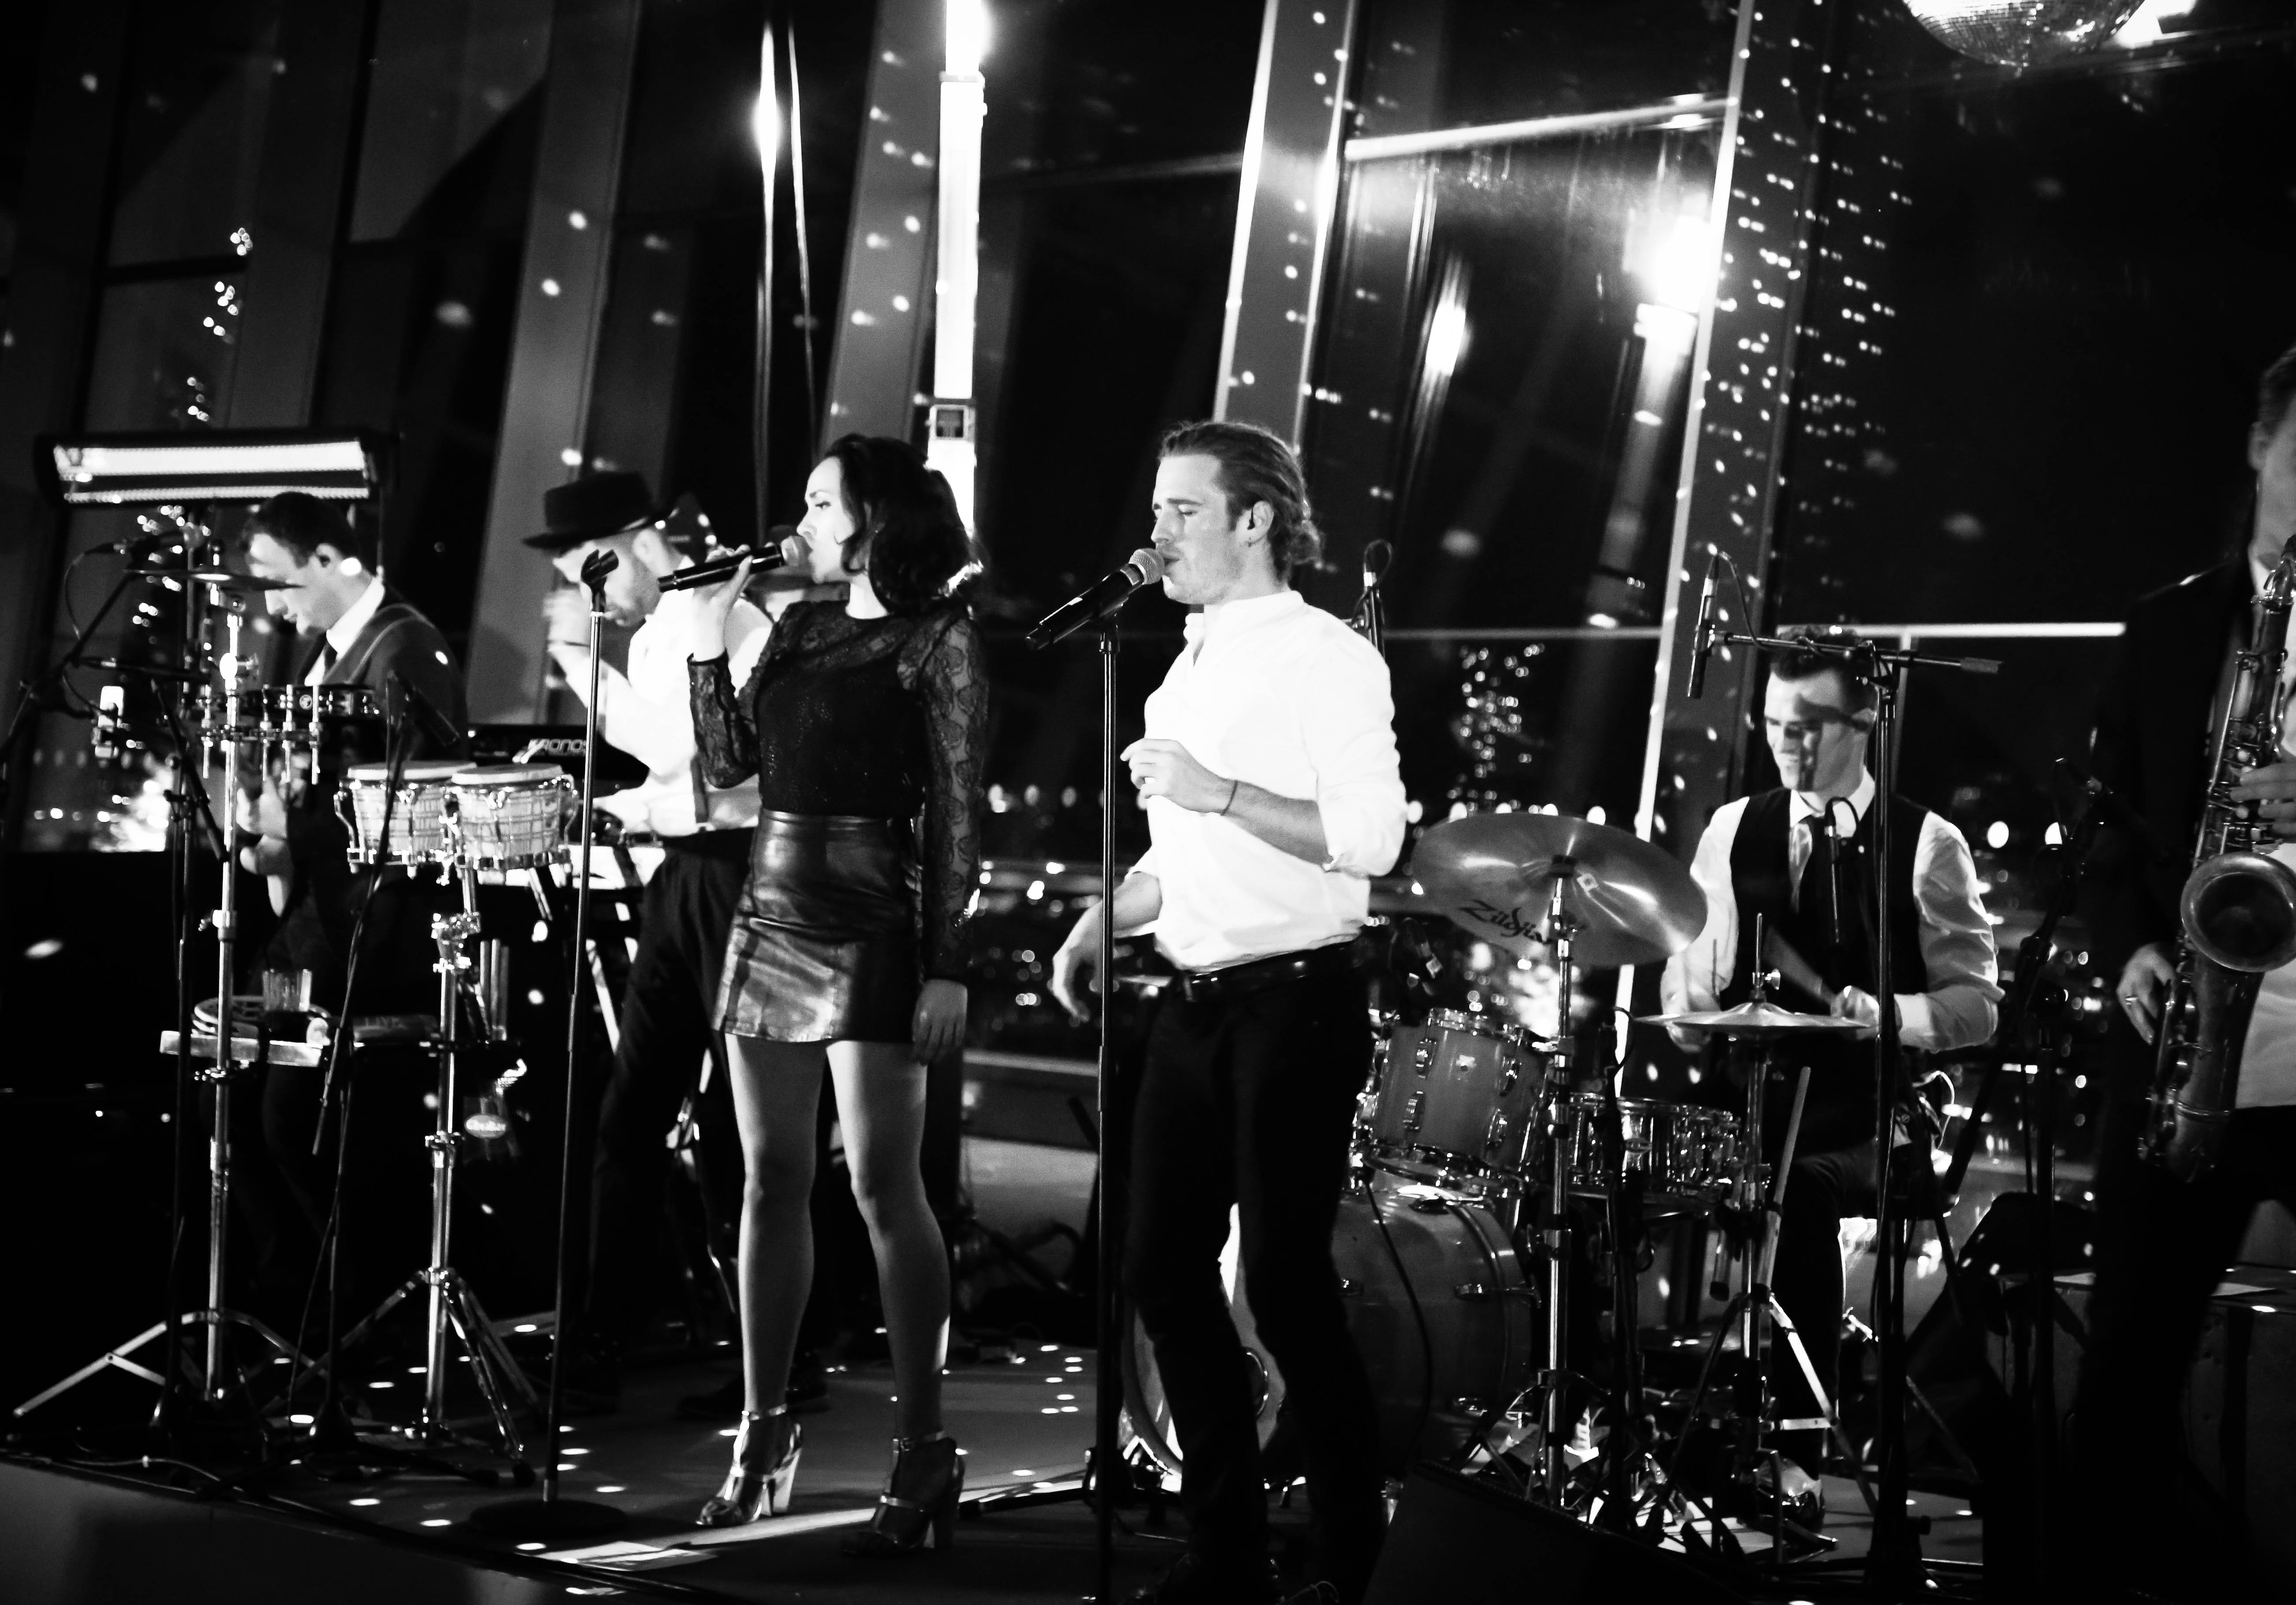 Sky Garden's Studio 54 New Year's Eve Party